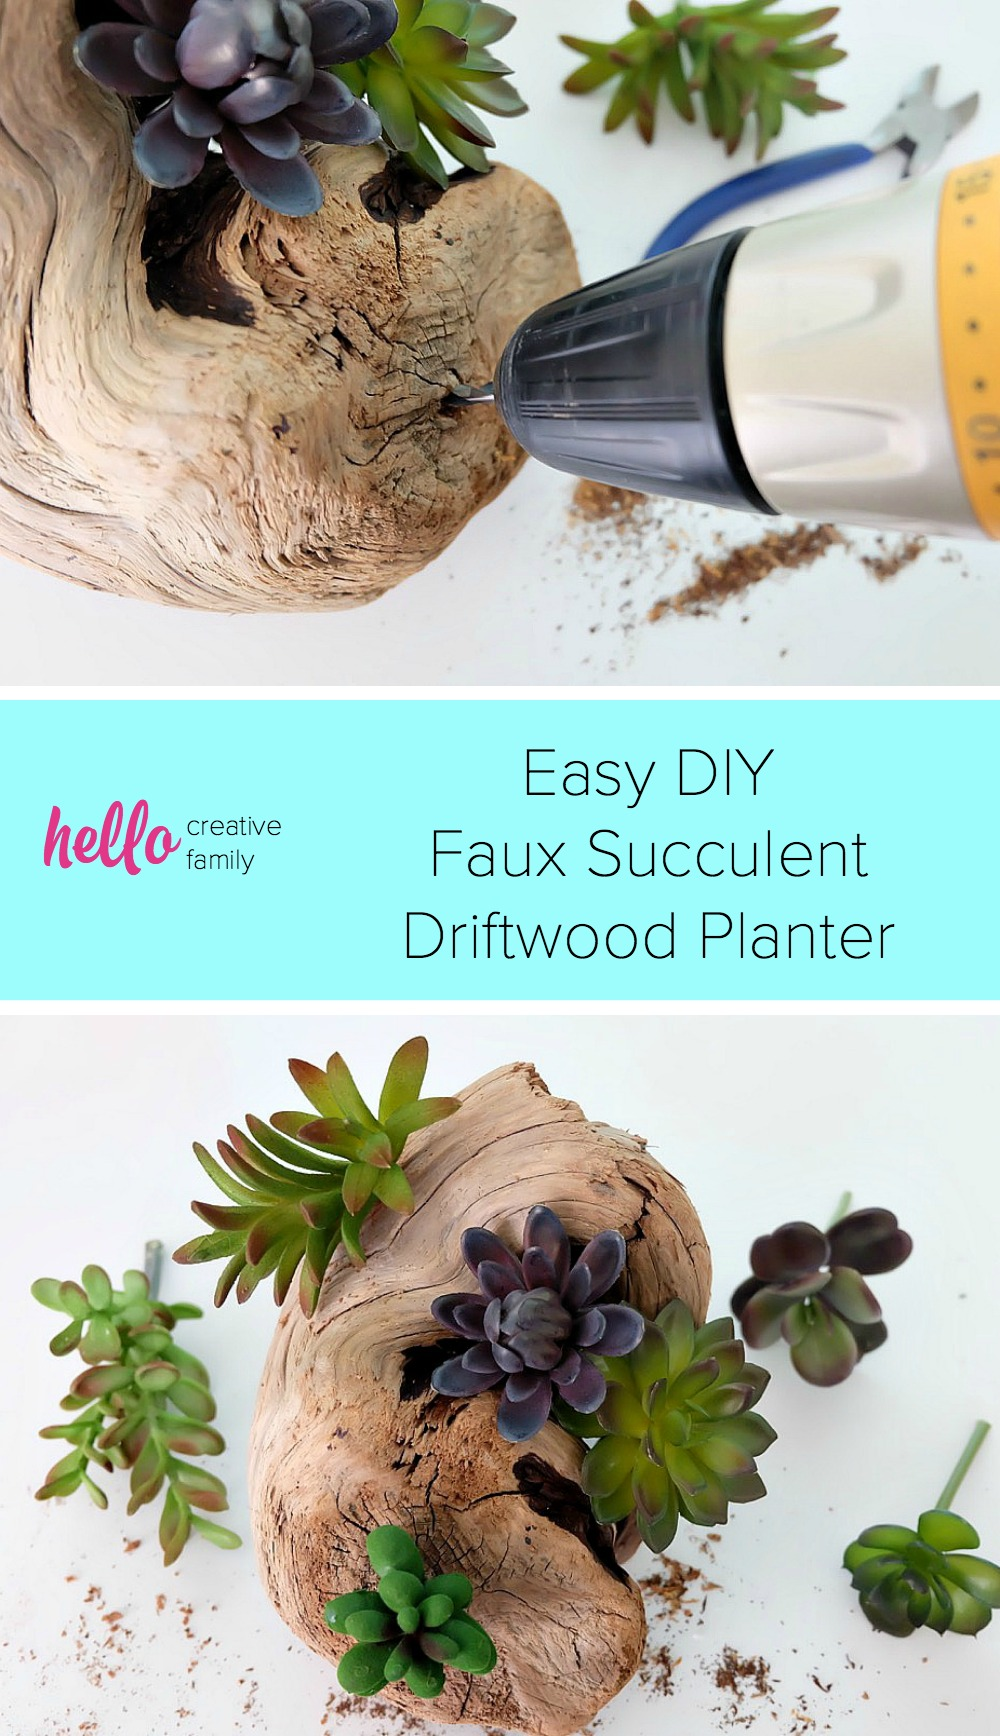 The perfect DIY for for decorating a beach cottage, as ocean themed wedding centerpieces or for a bit of pretty greenery in your home! Collect treasures while beach combing then make this pretty and easy DIY faux succulent driftwood planter. Perfect for those with a black thumb! #DIY #Beach #Succulents